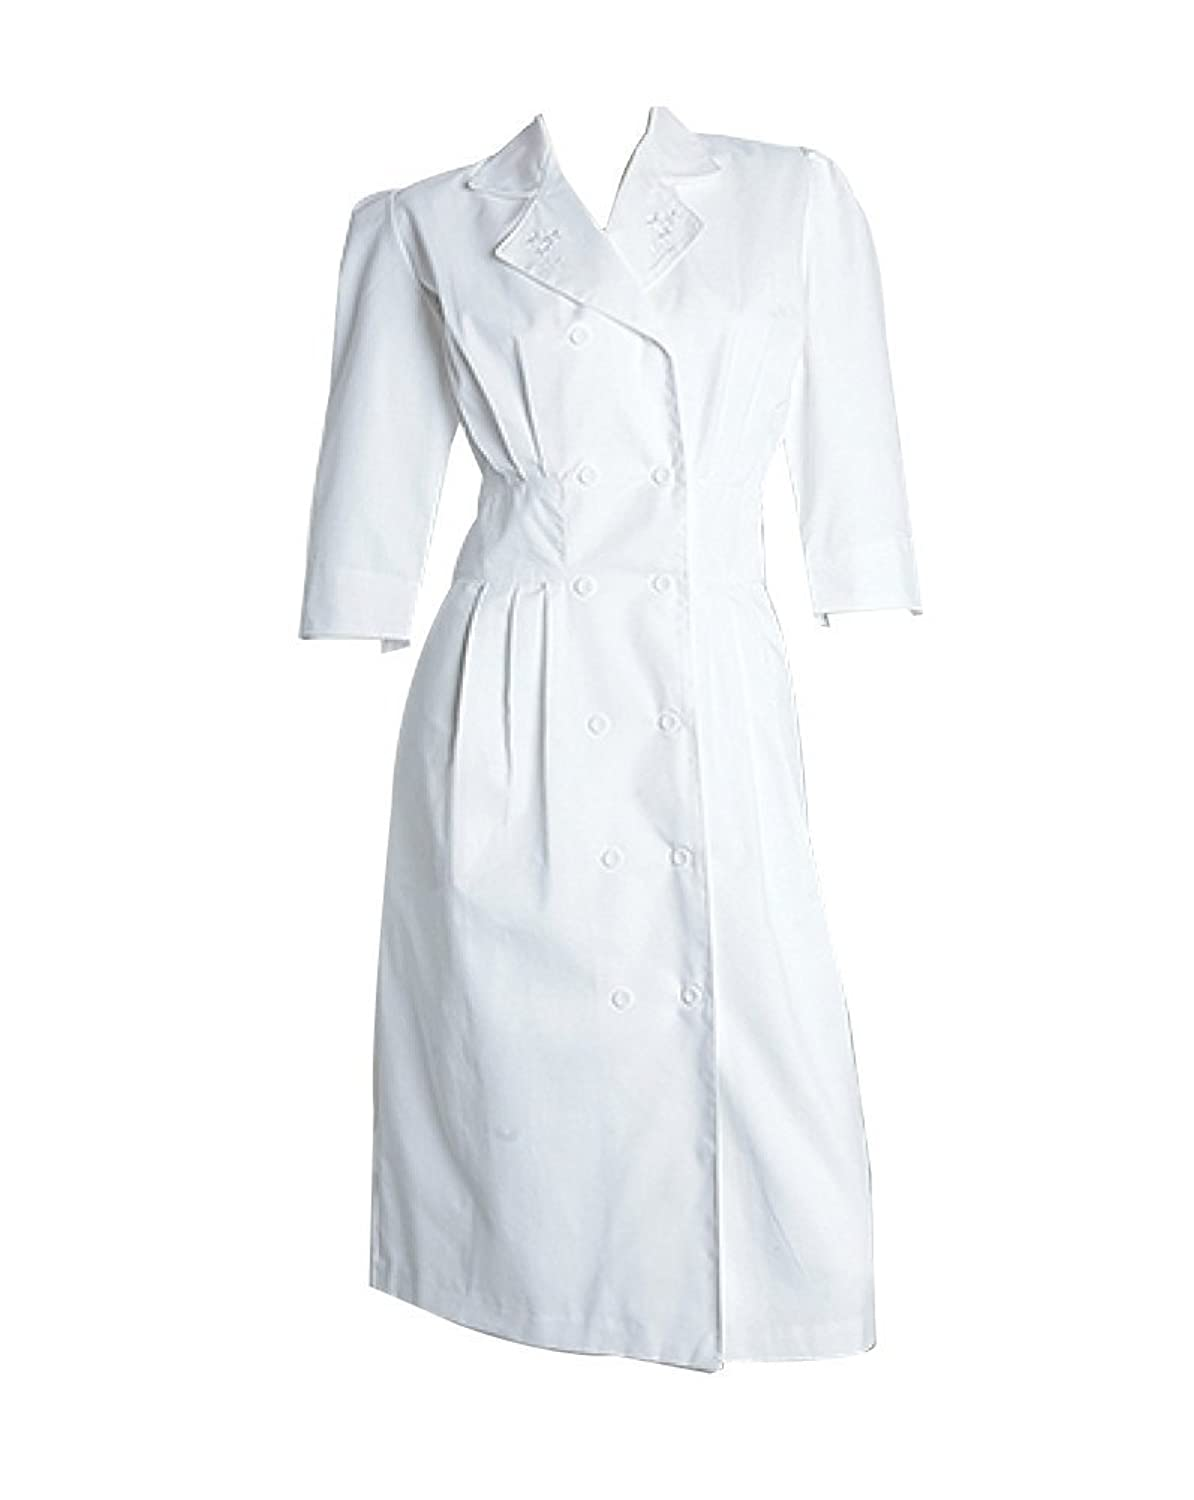 Prima by Barco Uniforms Women's Embroidered Tuck Waist Scrub Dress